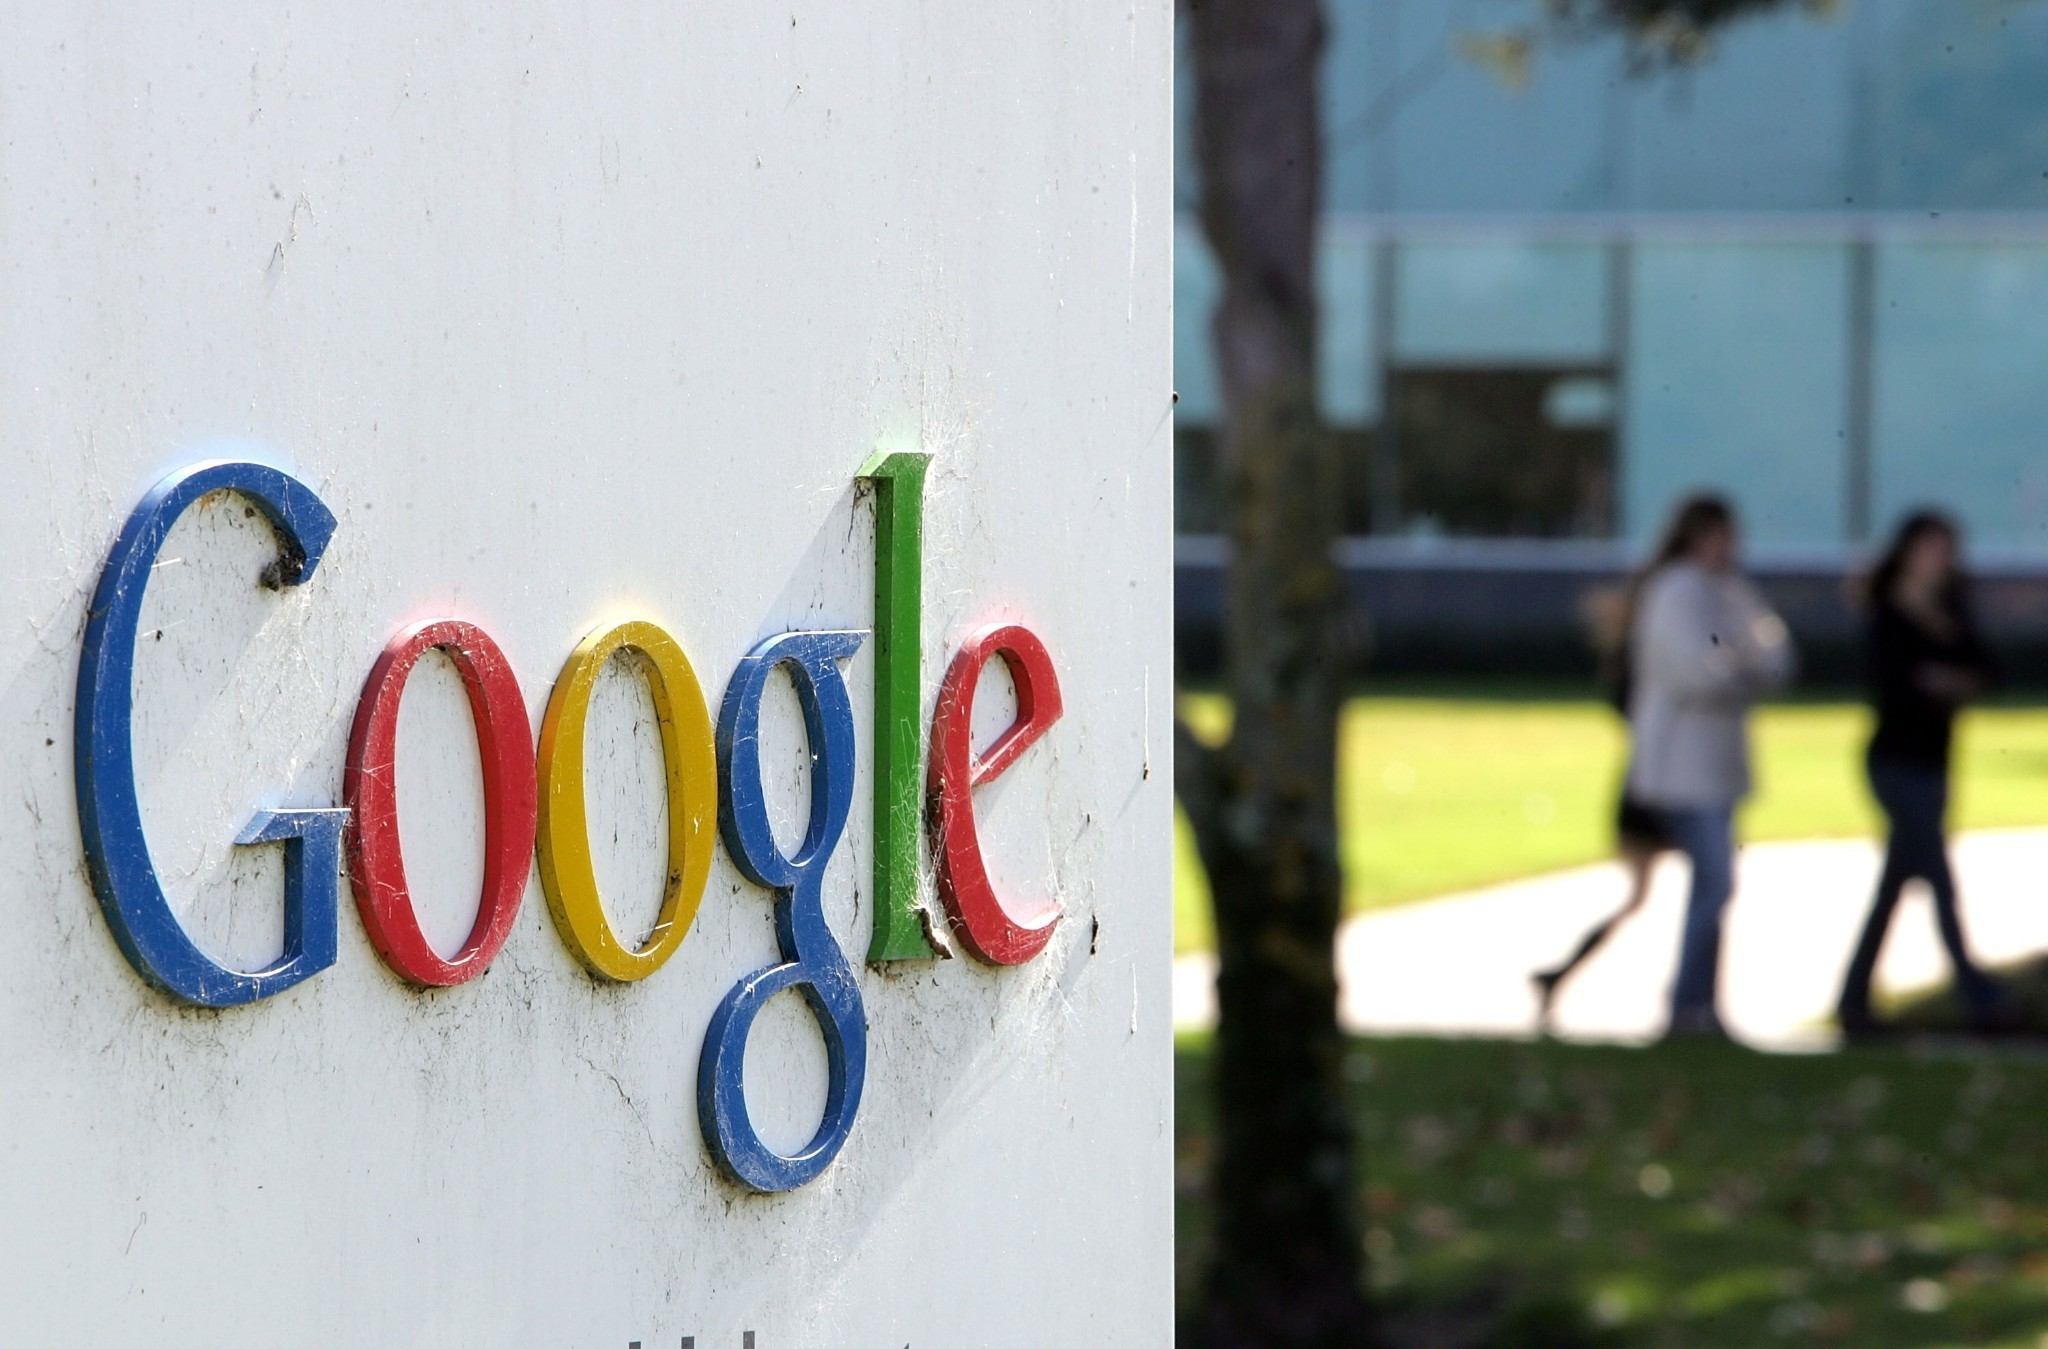 Google's new service will ease real-time communications for applications